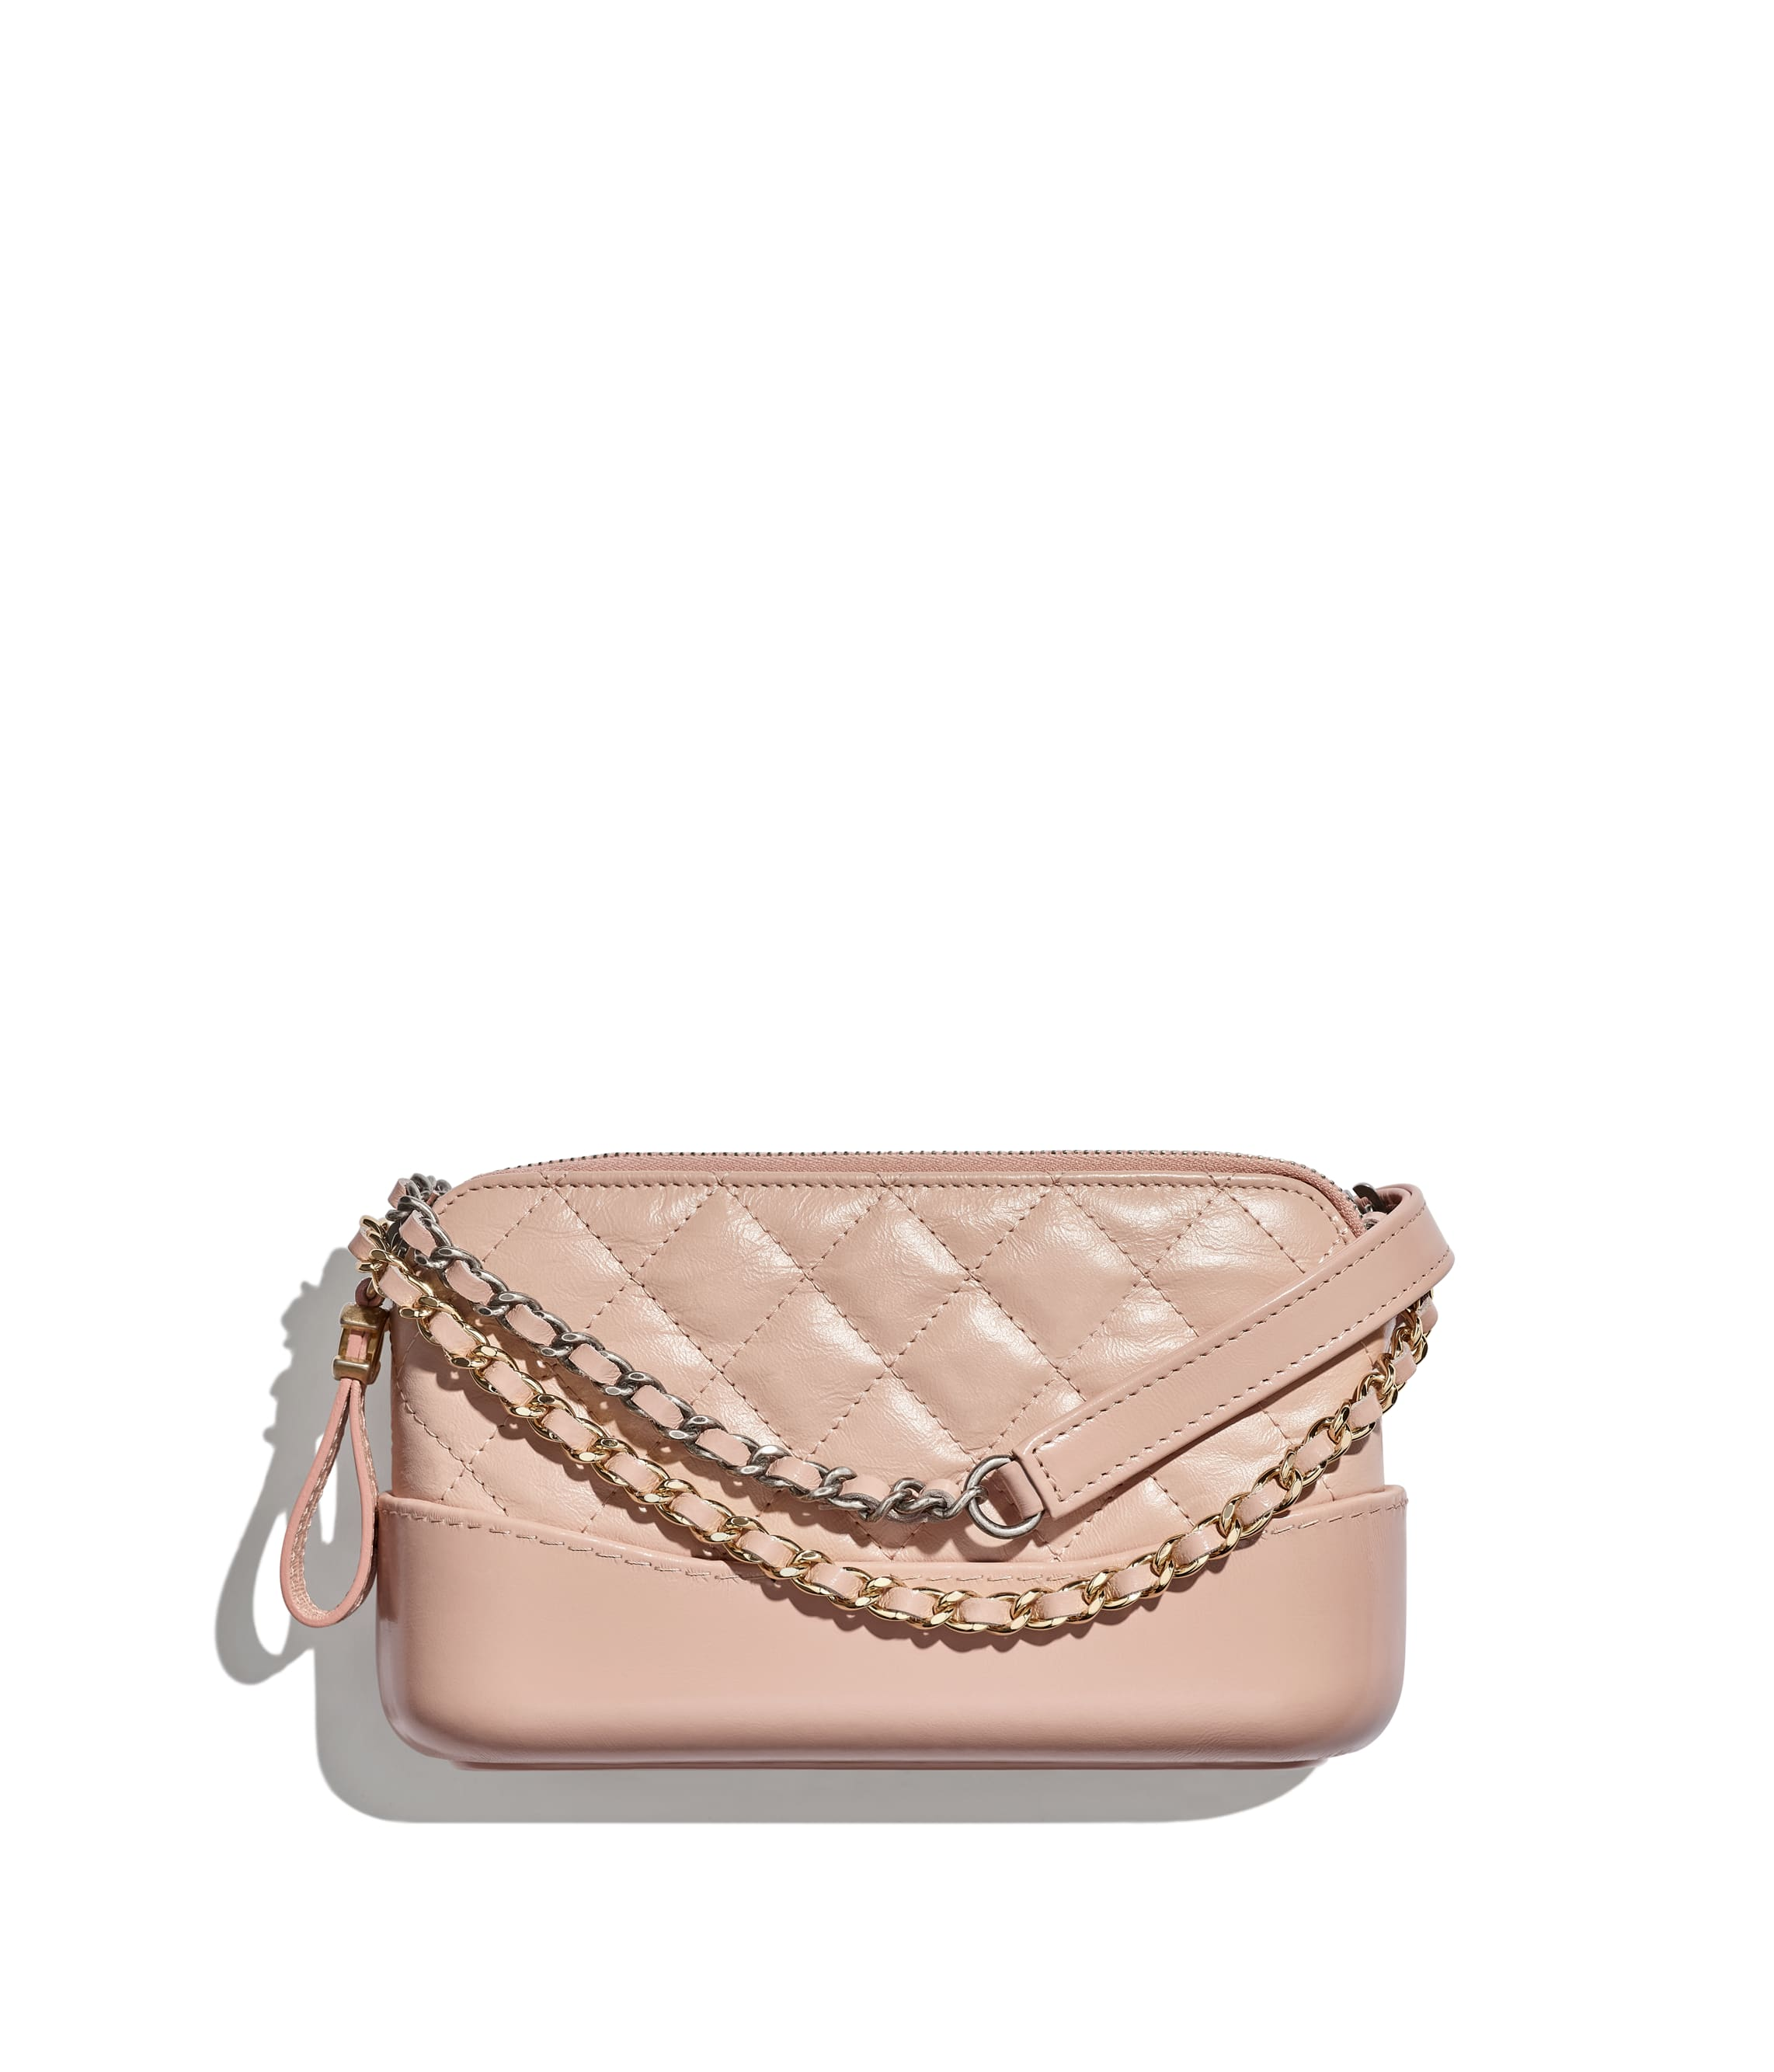 bc2568a33260 Clutches with Chain - Small Leather Goods - Page 2 - CHANEL